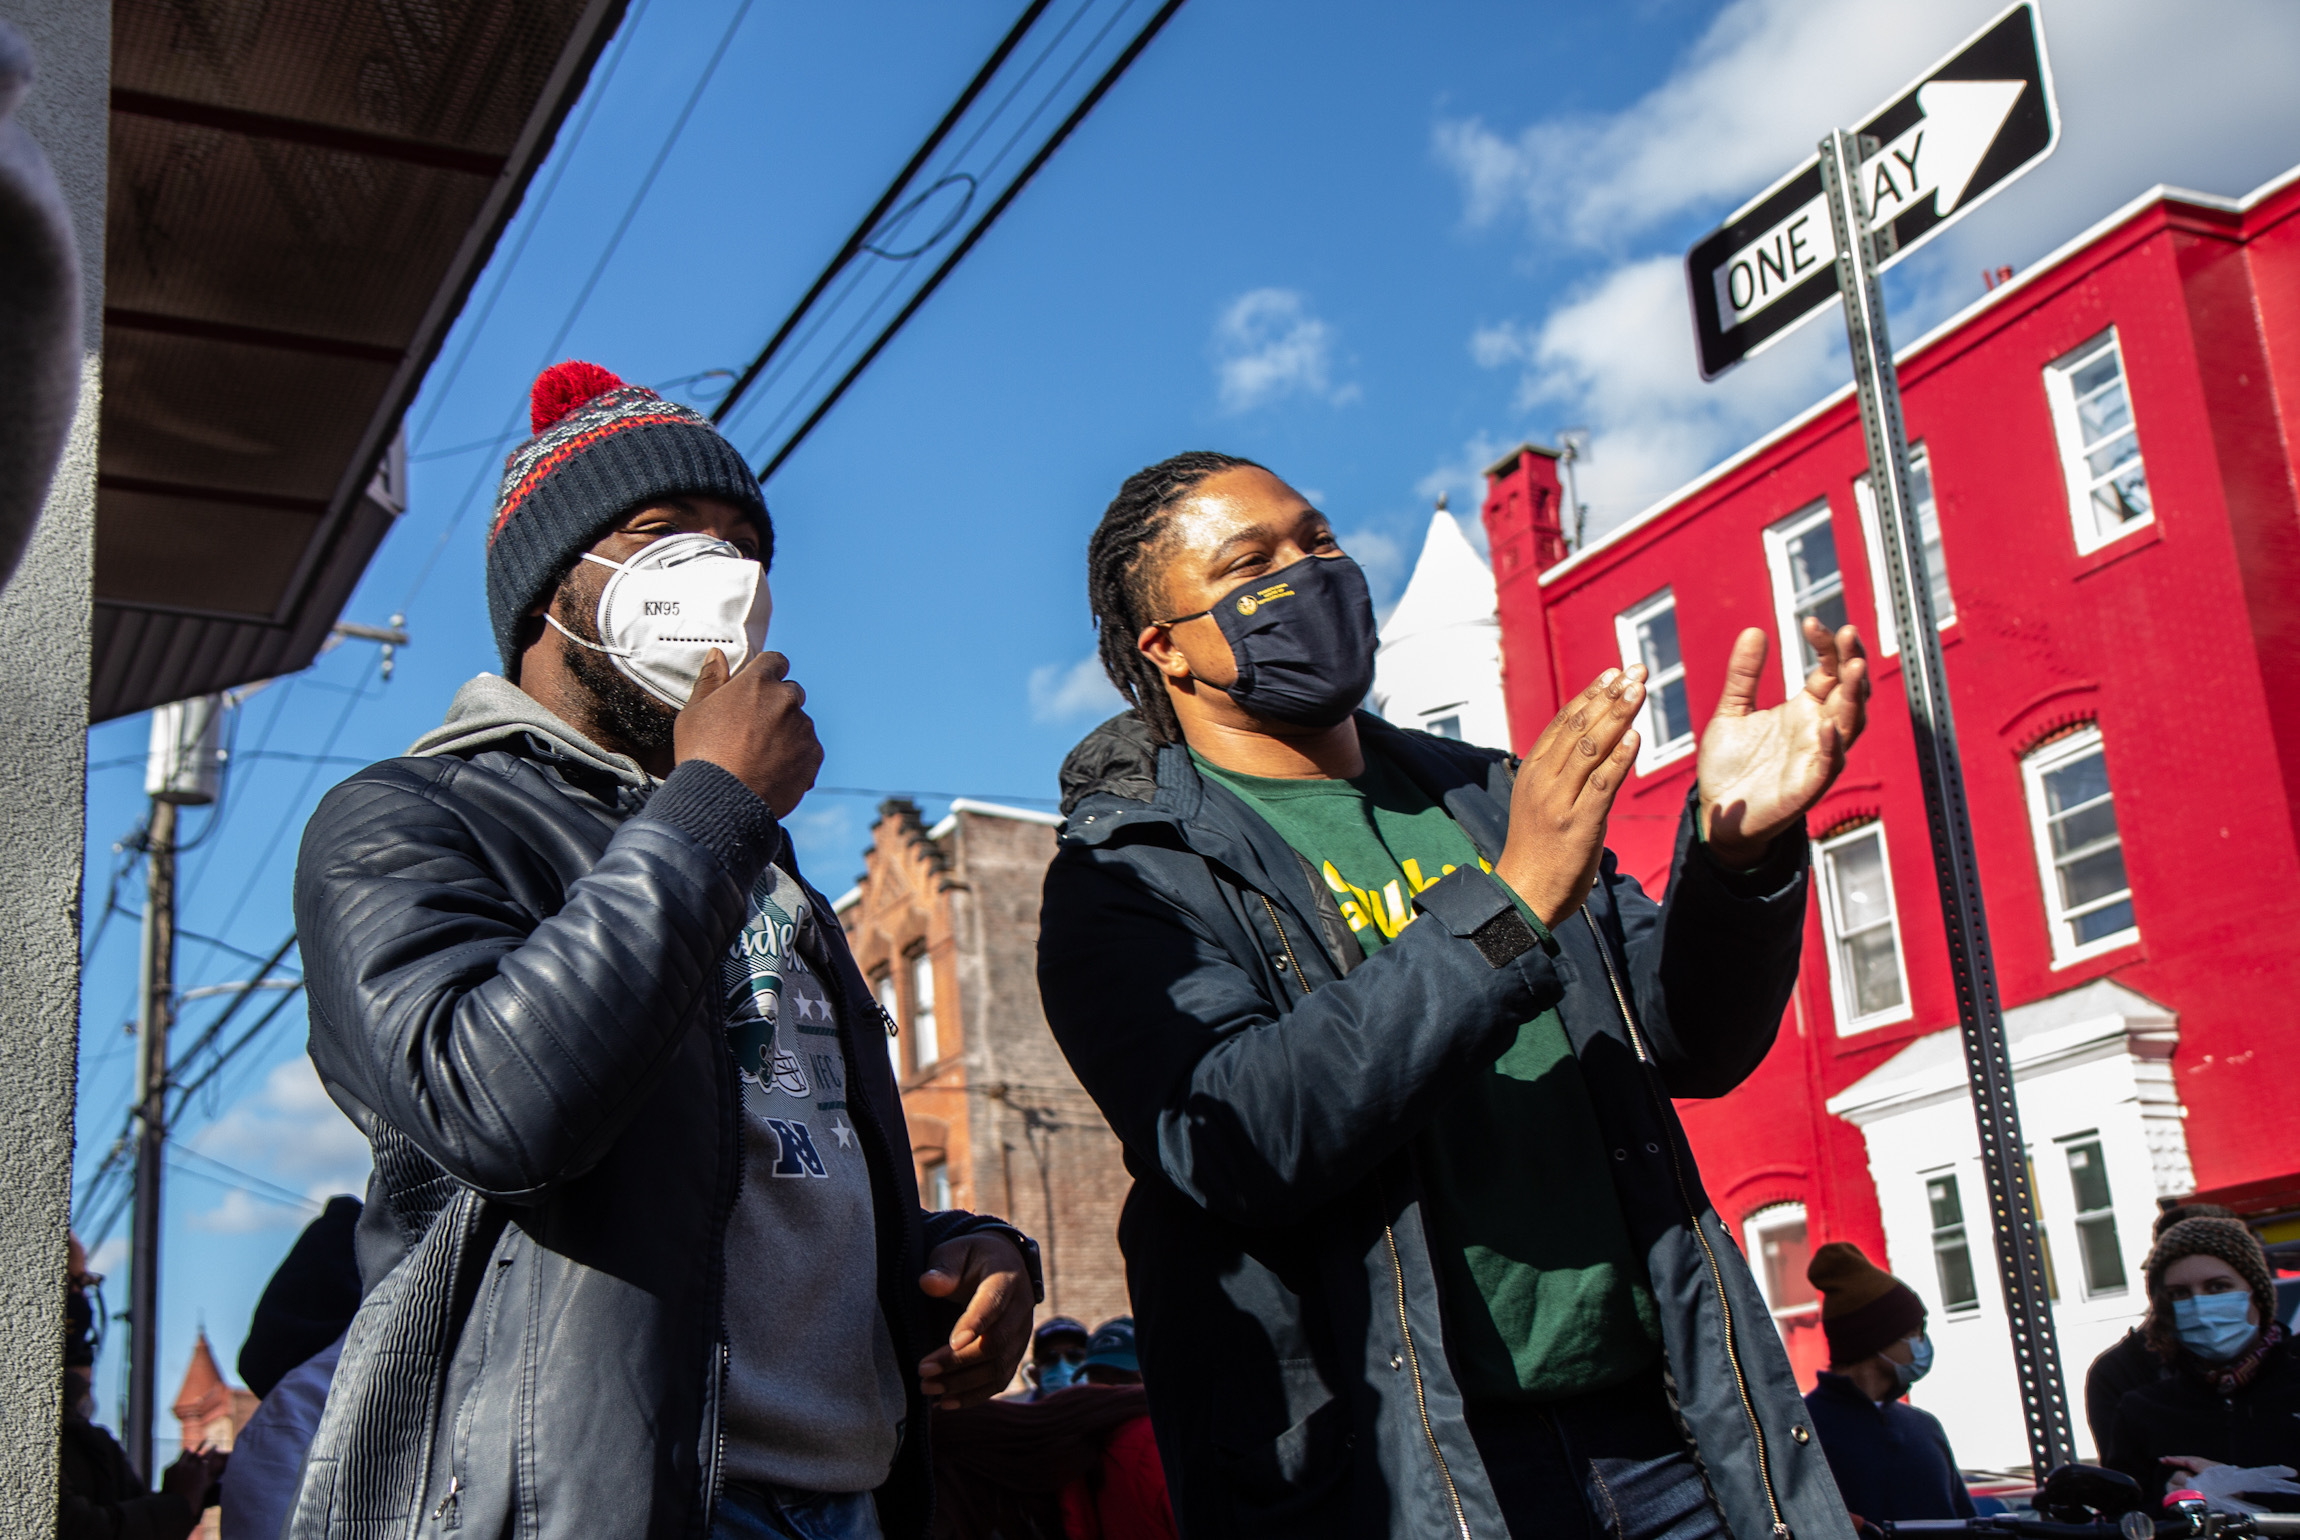 Terrill Haigler and State Rep. Malcolm Kenyatta, wearing face masks, stand on North 17th Street